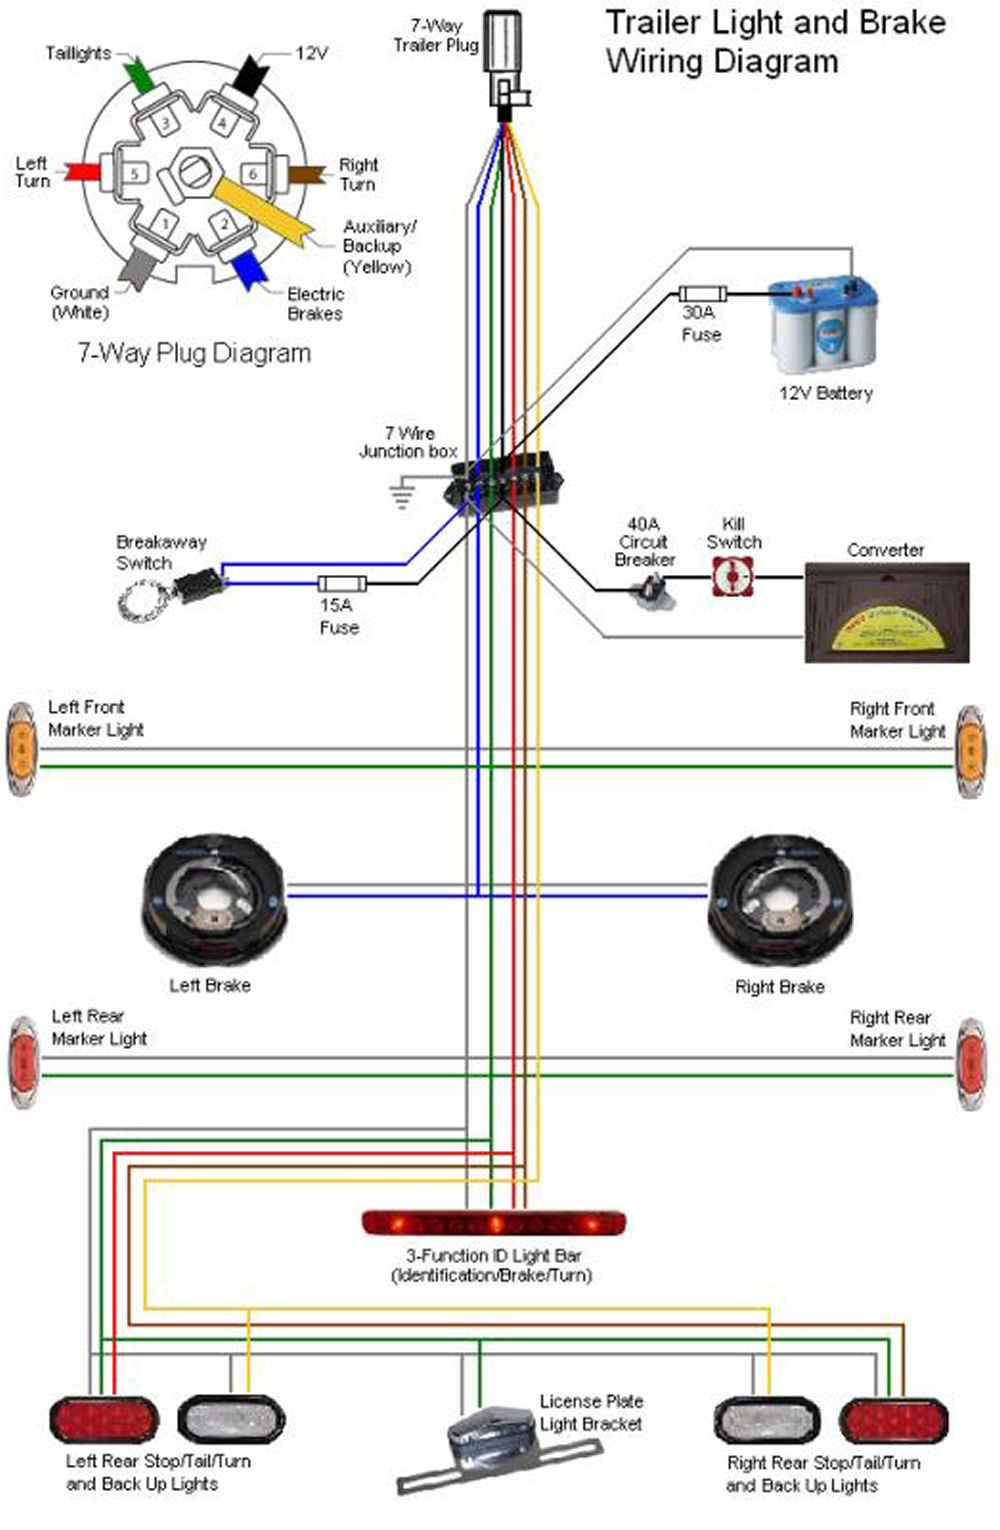 7 Prong Trailer Wiring Diagram - Deltagenerali - Wiring Diagram For 7 Prong Trailer Plug